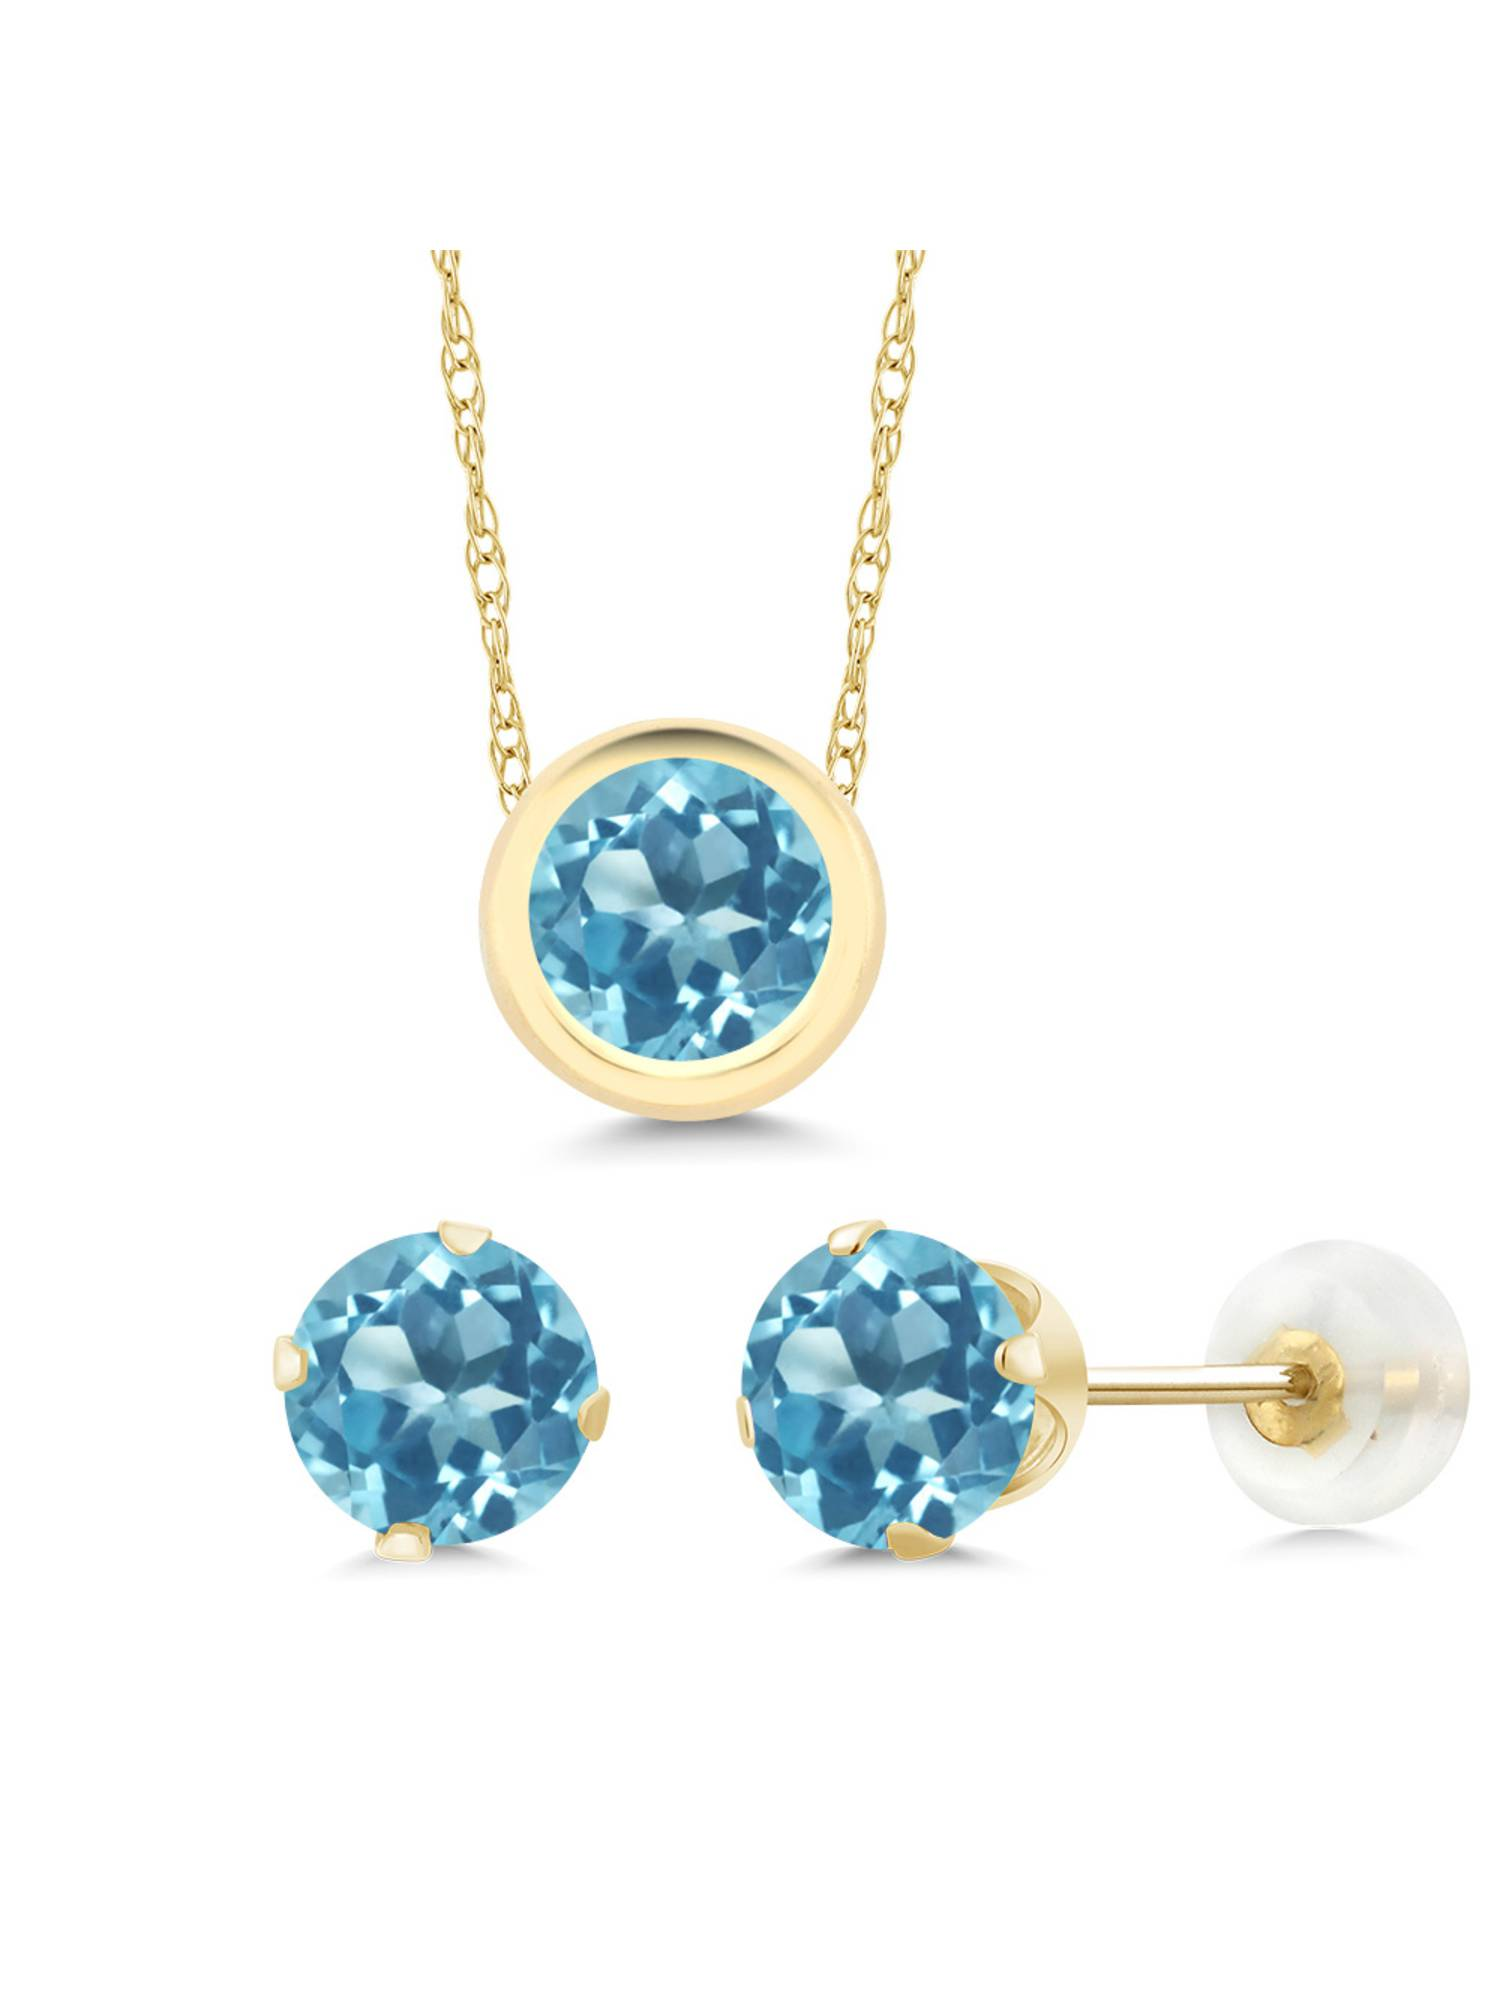 2.70 Ct Round Swiss Blue Topaz 14K Yellow Gold Pendant Earrings Set by